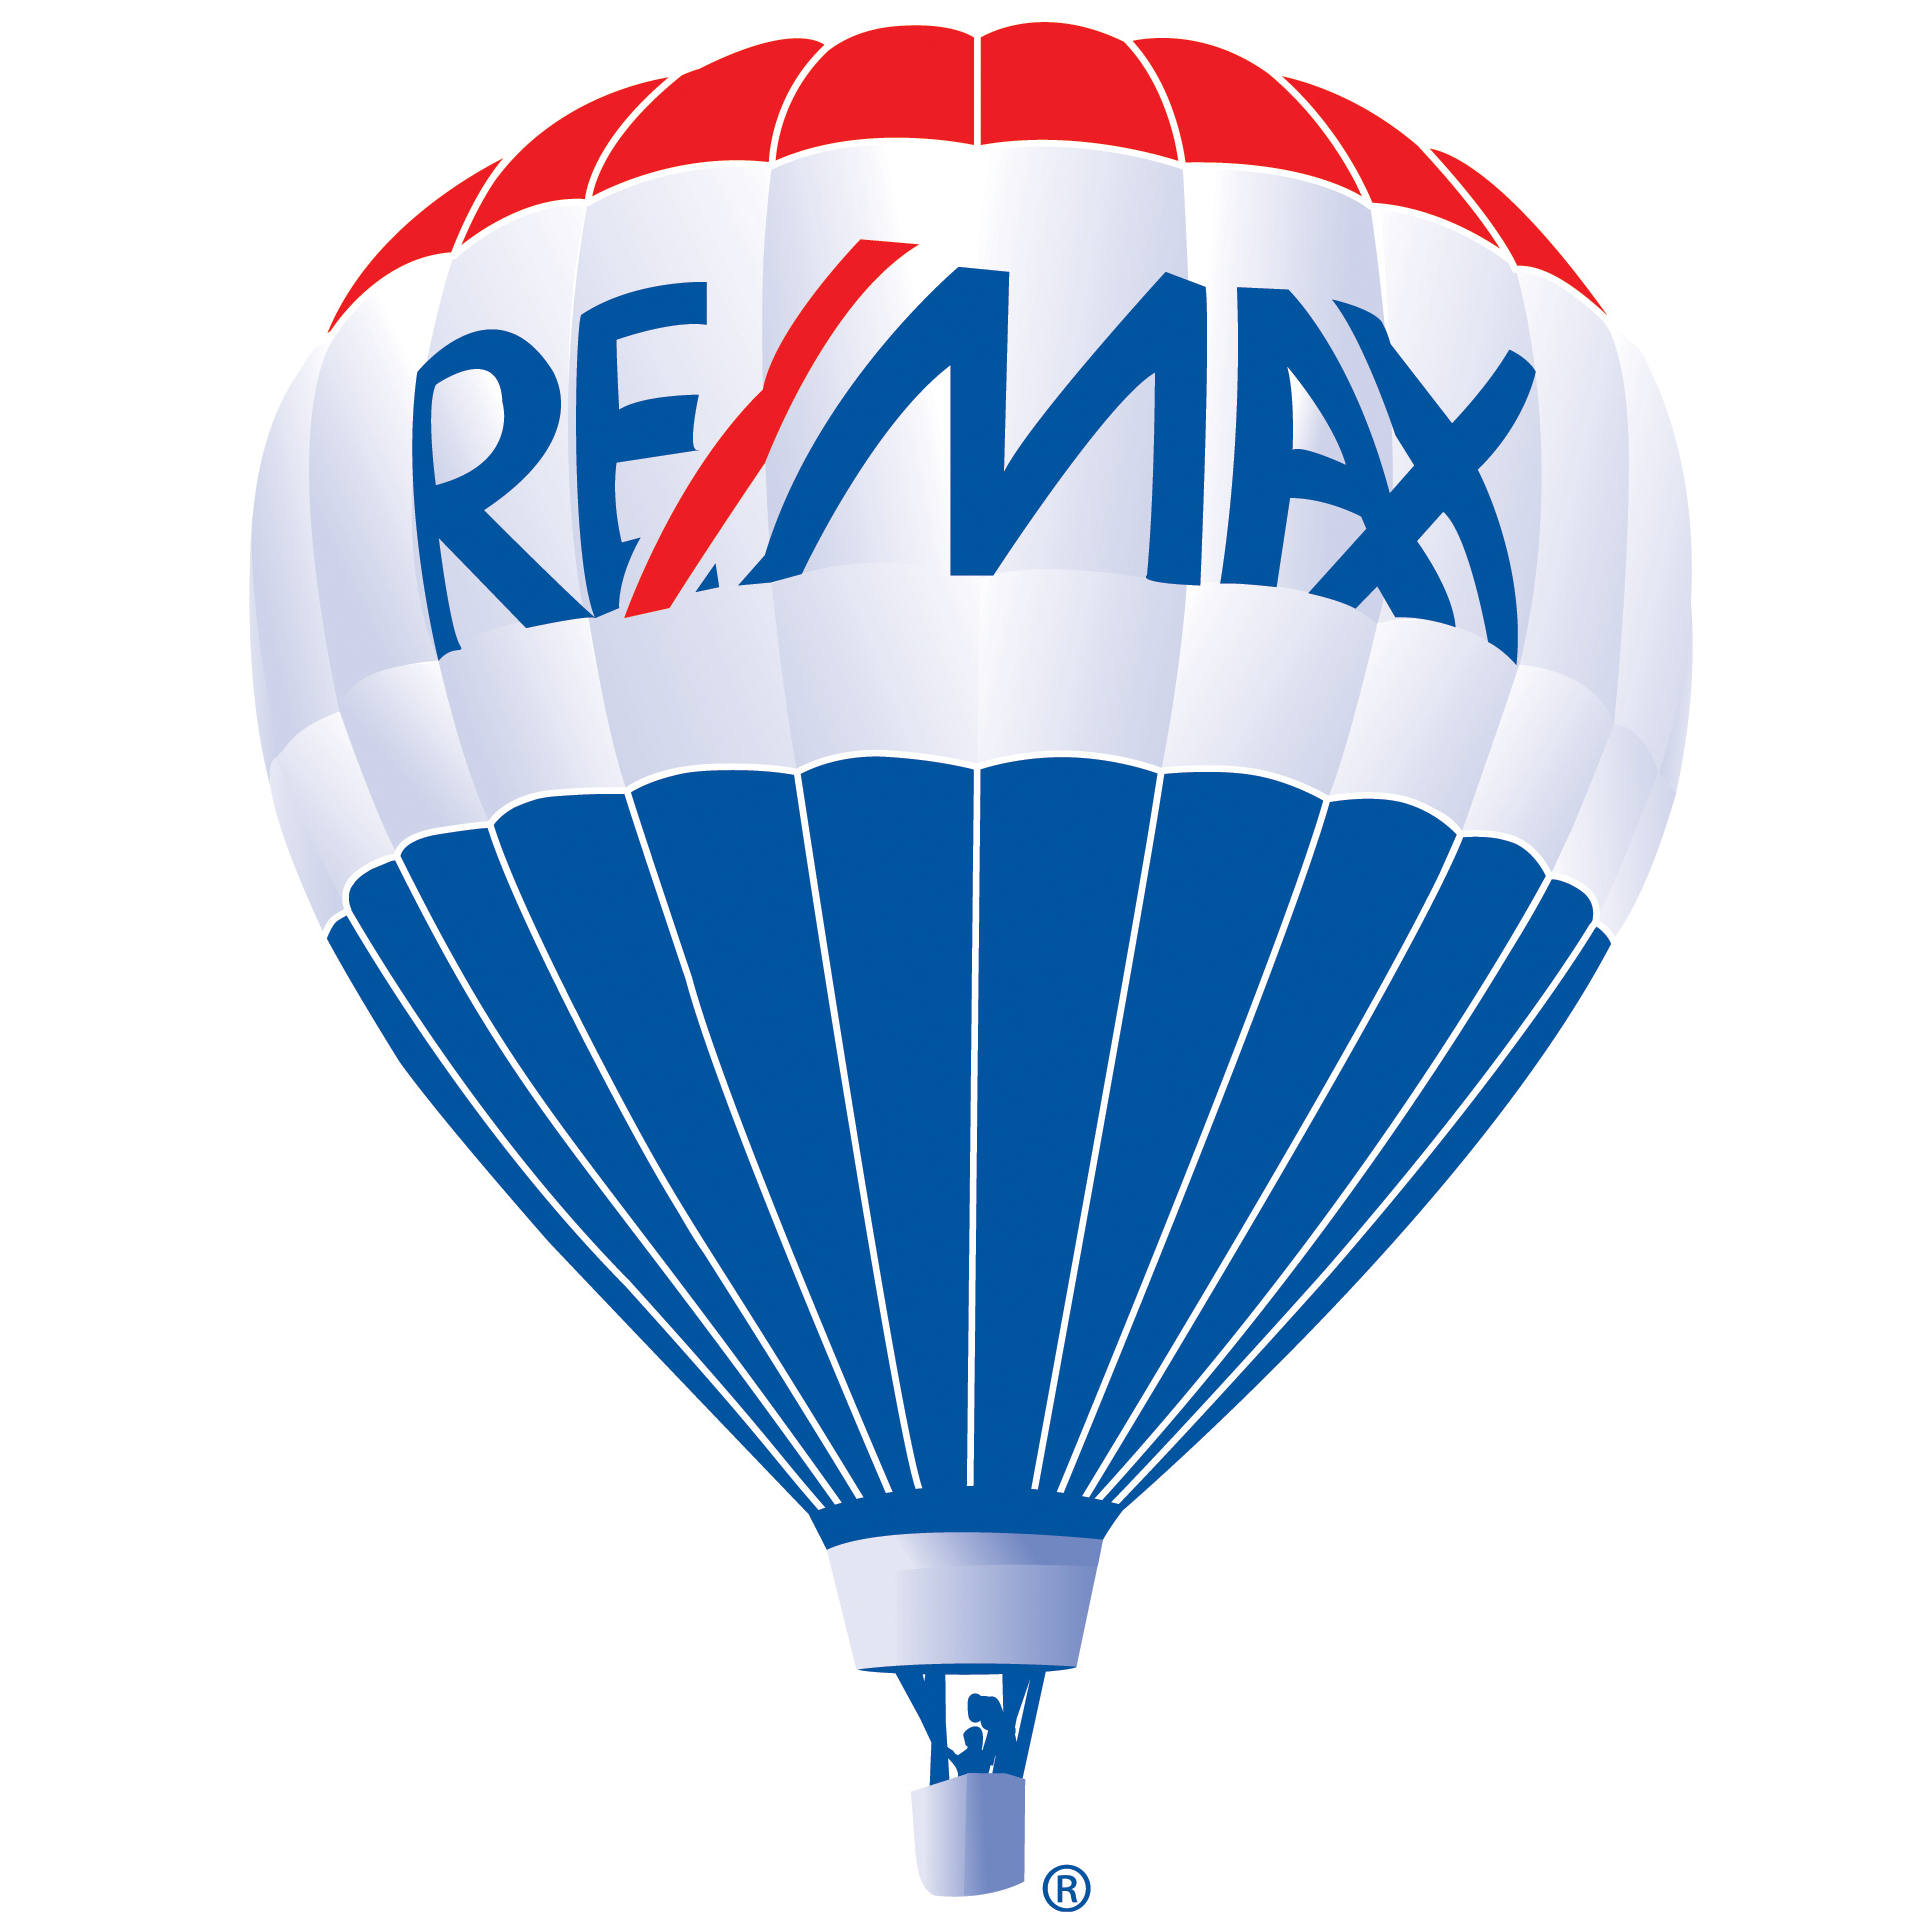 ReMAX franchise